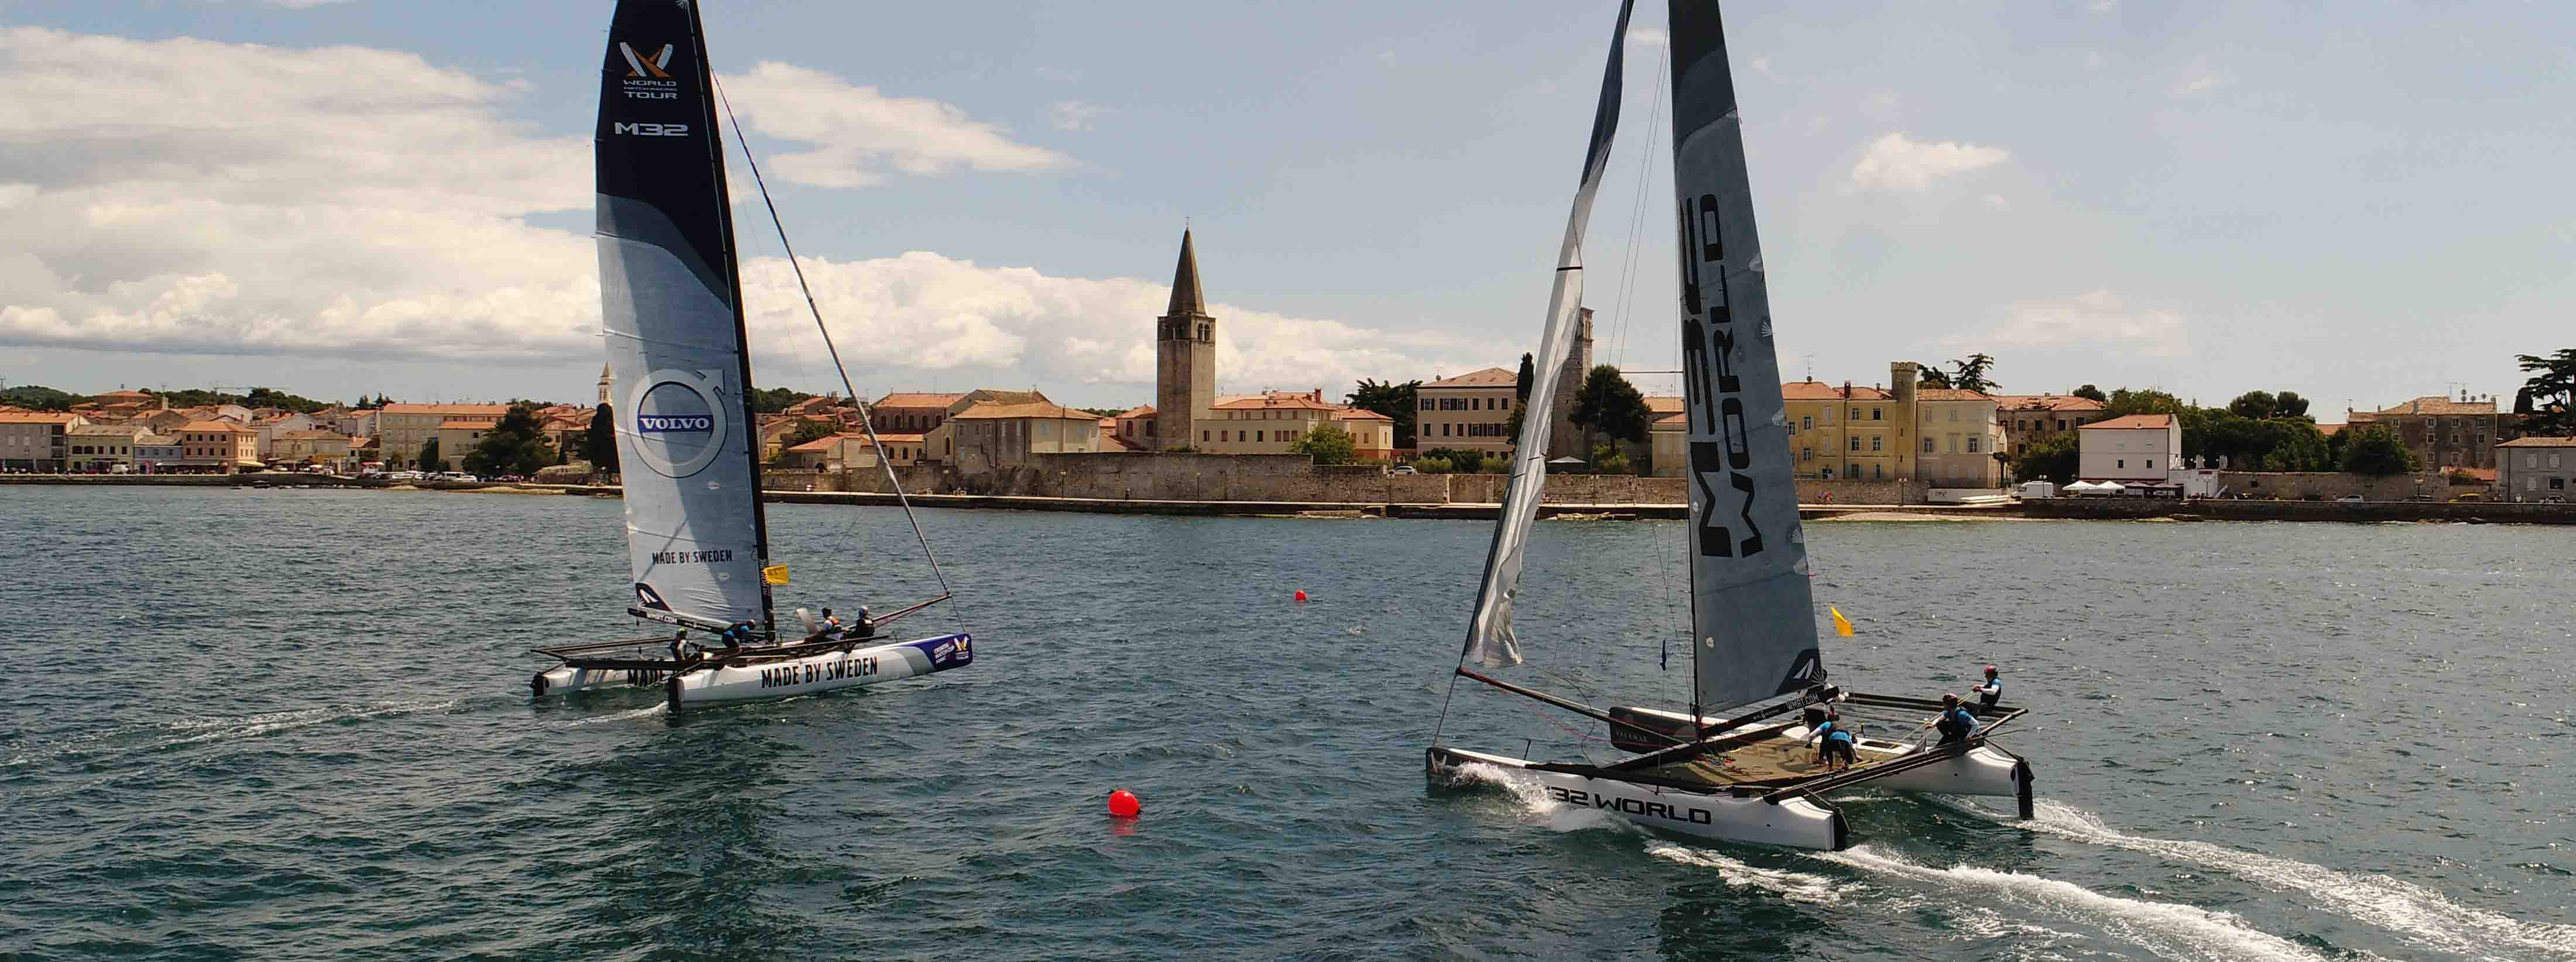 Delapierre takes it to the wire at Croatia Match Cup